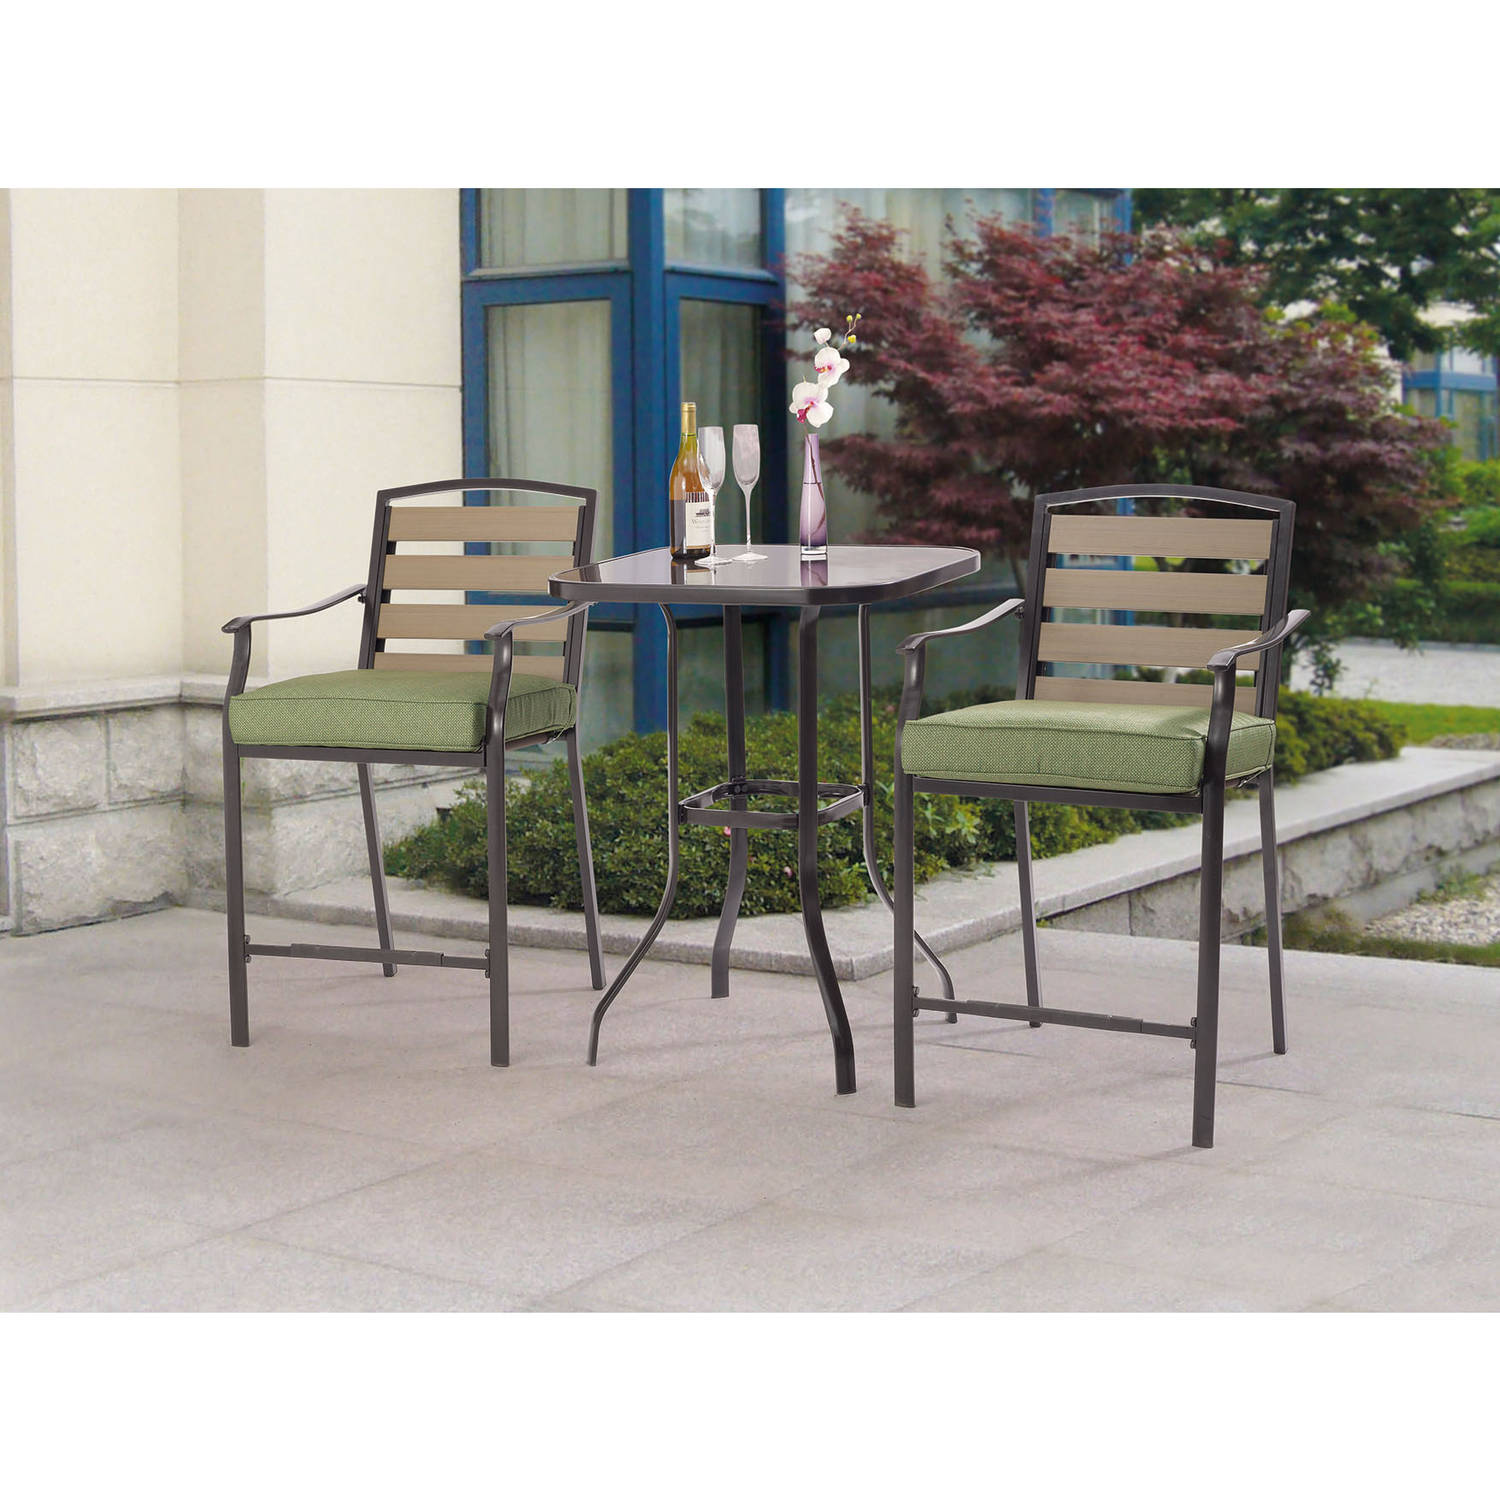 Incroyable Mainstays Oakmont Meadows 3 Piece Bar Height Patio Bistro Set, Seats 2    Walmart.com